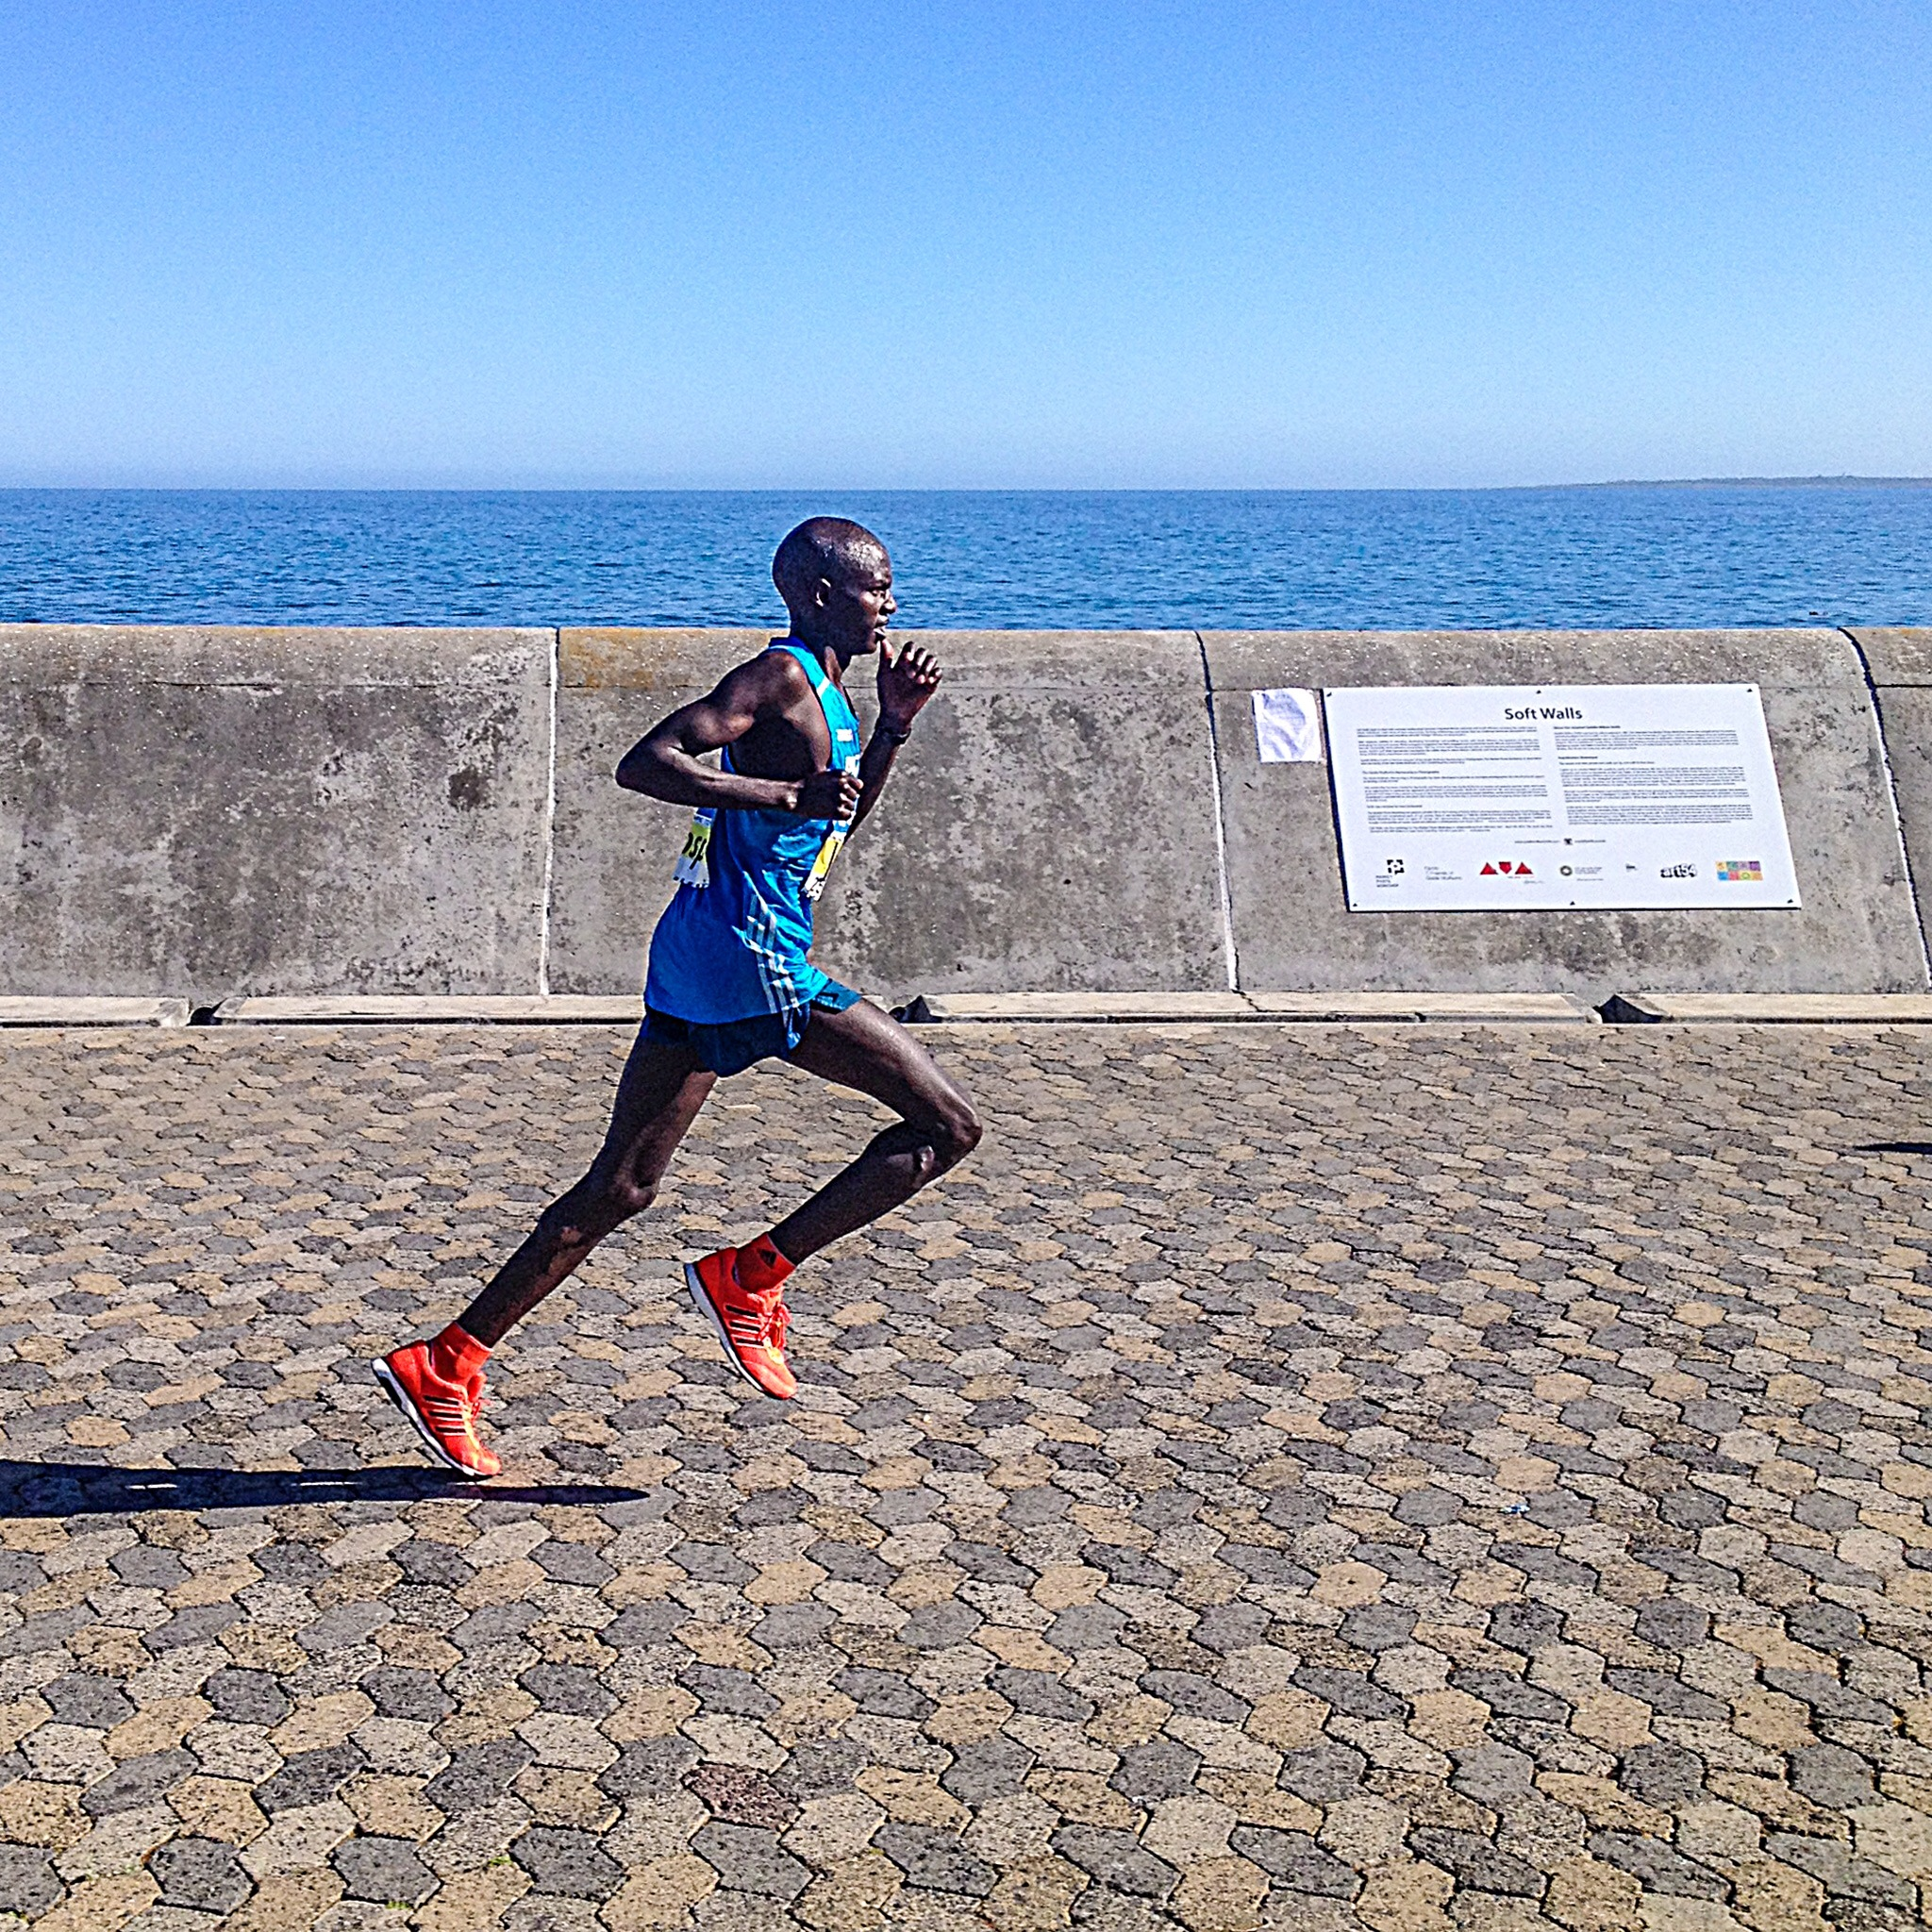 Josphat Kamzee, 3rd place in Cape Town marathon